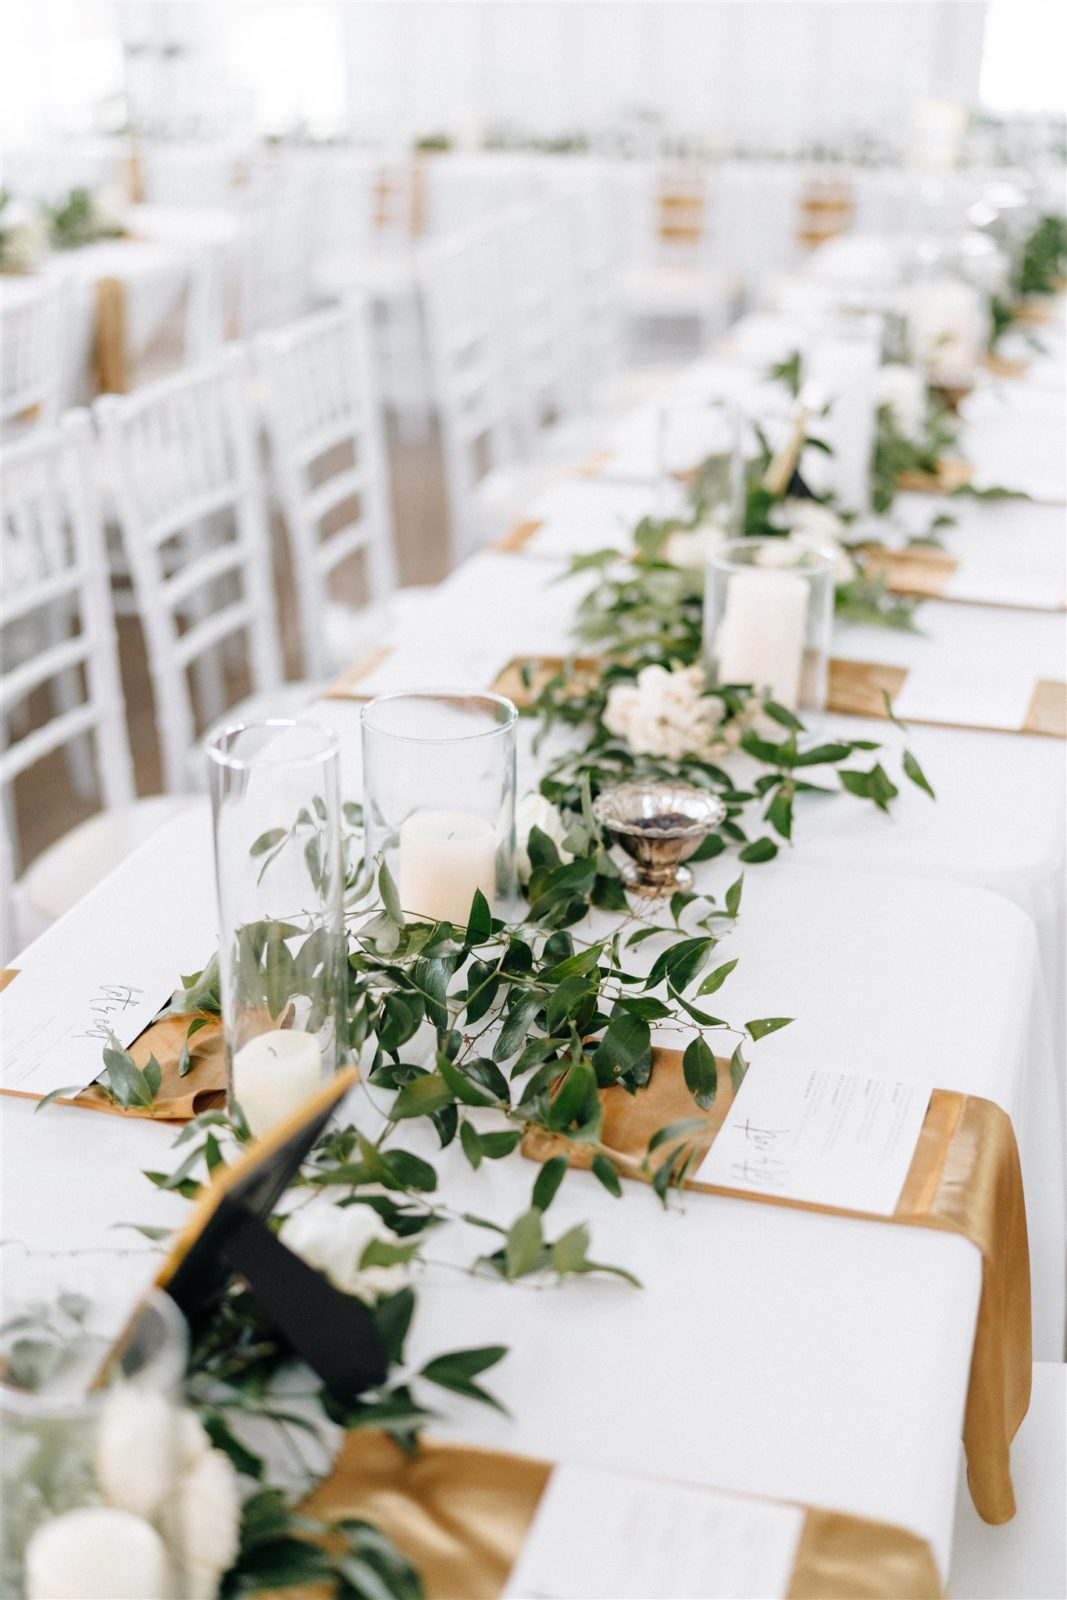 Greenery Wedding Table Runners: Simply Modern Firefly Gardens Wedding featured on Alexa Kay Events